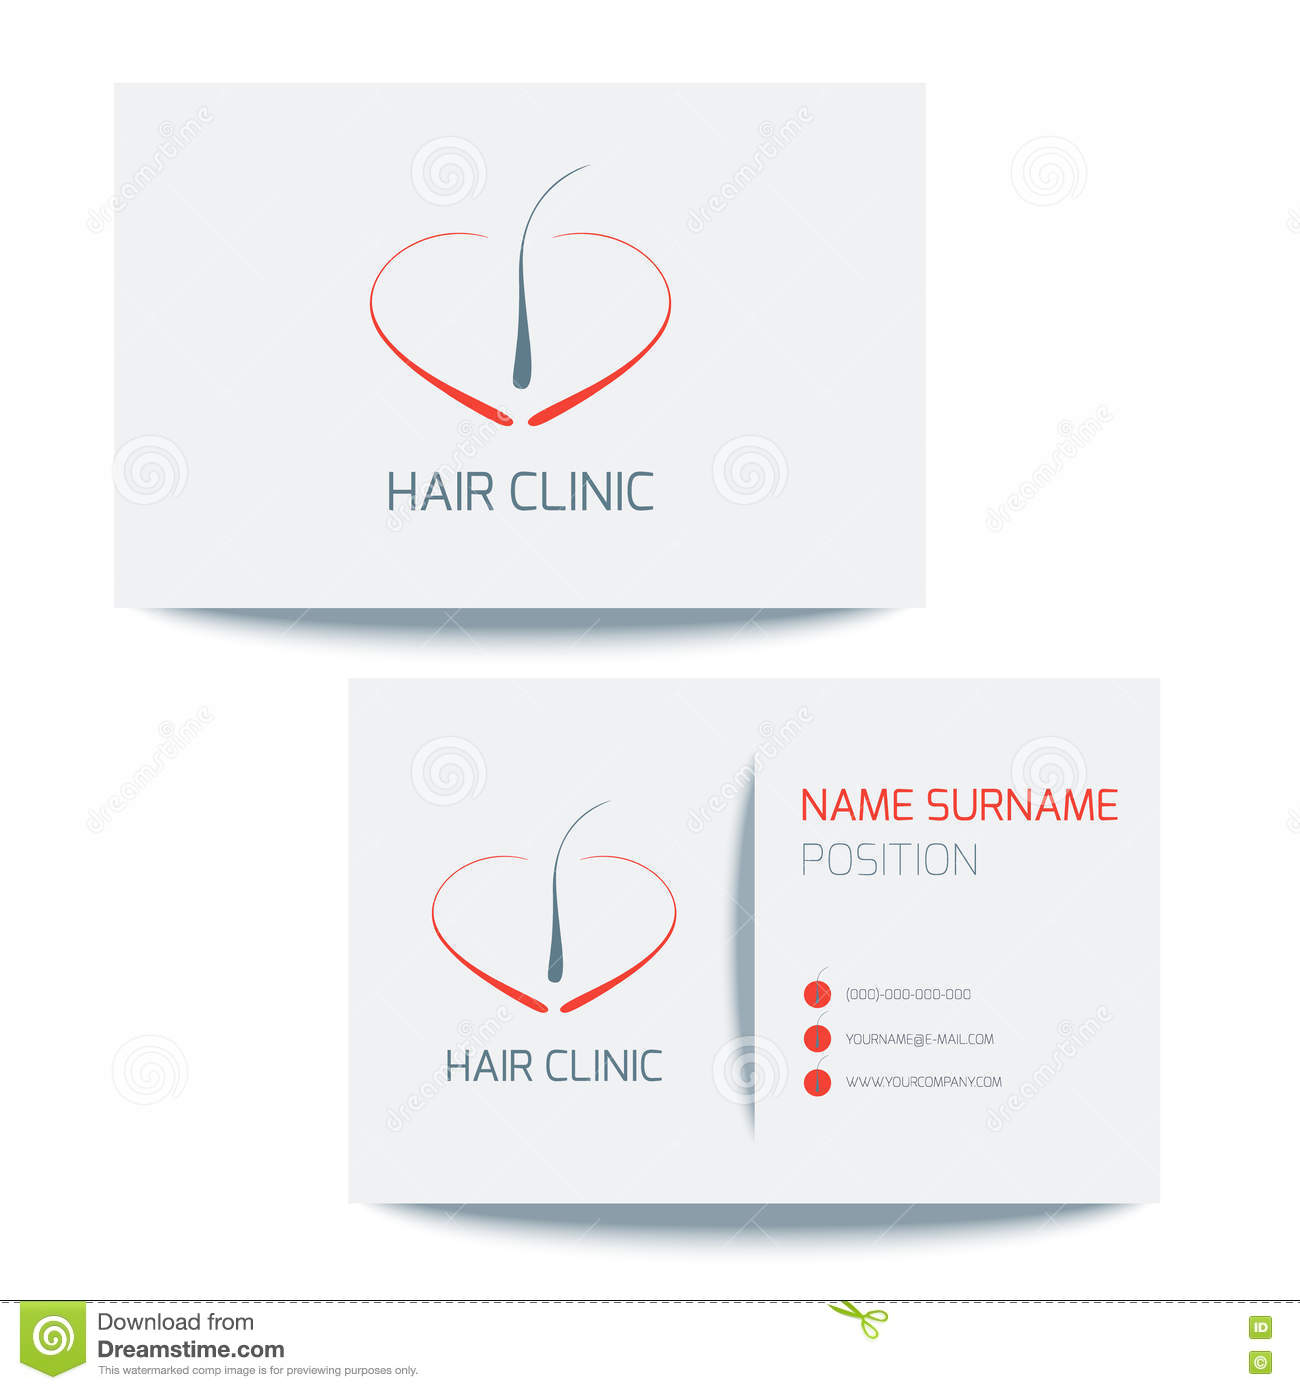 Calibre Medical De Logo Carte Visite Professionnelle Avec Licone Follicule Pileux Dirigez La Conception Graphique Dampoule Cheveux